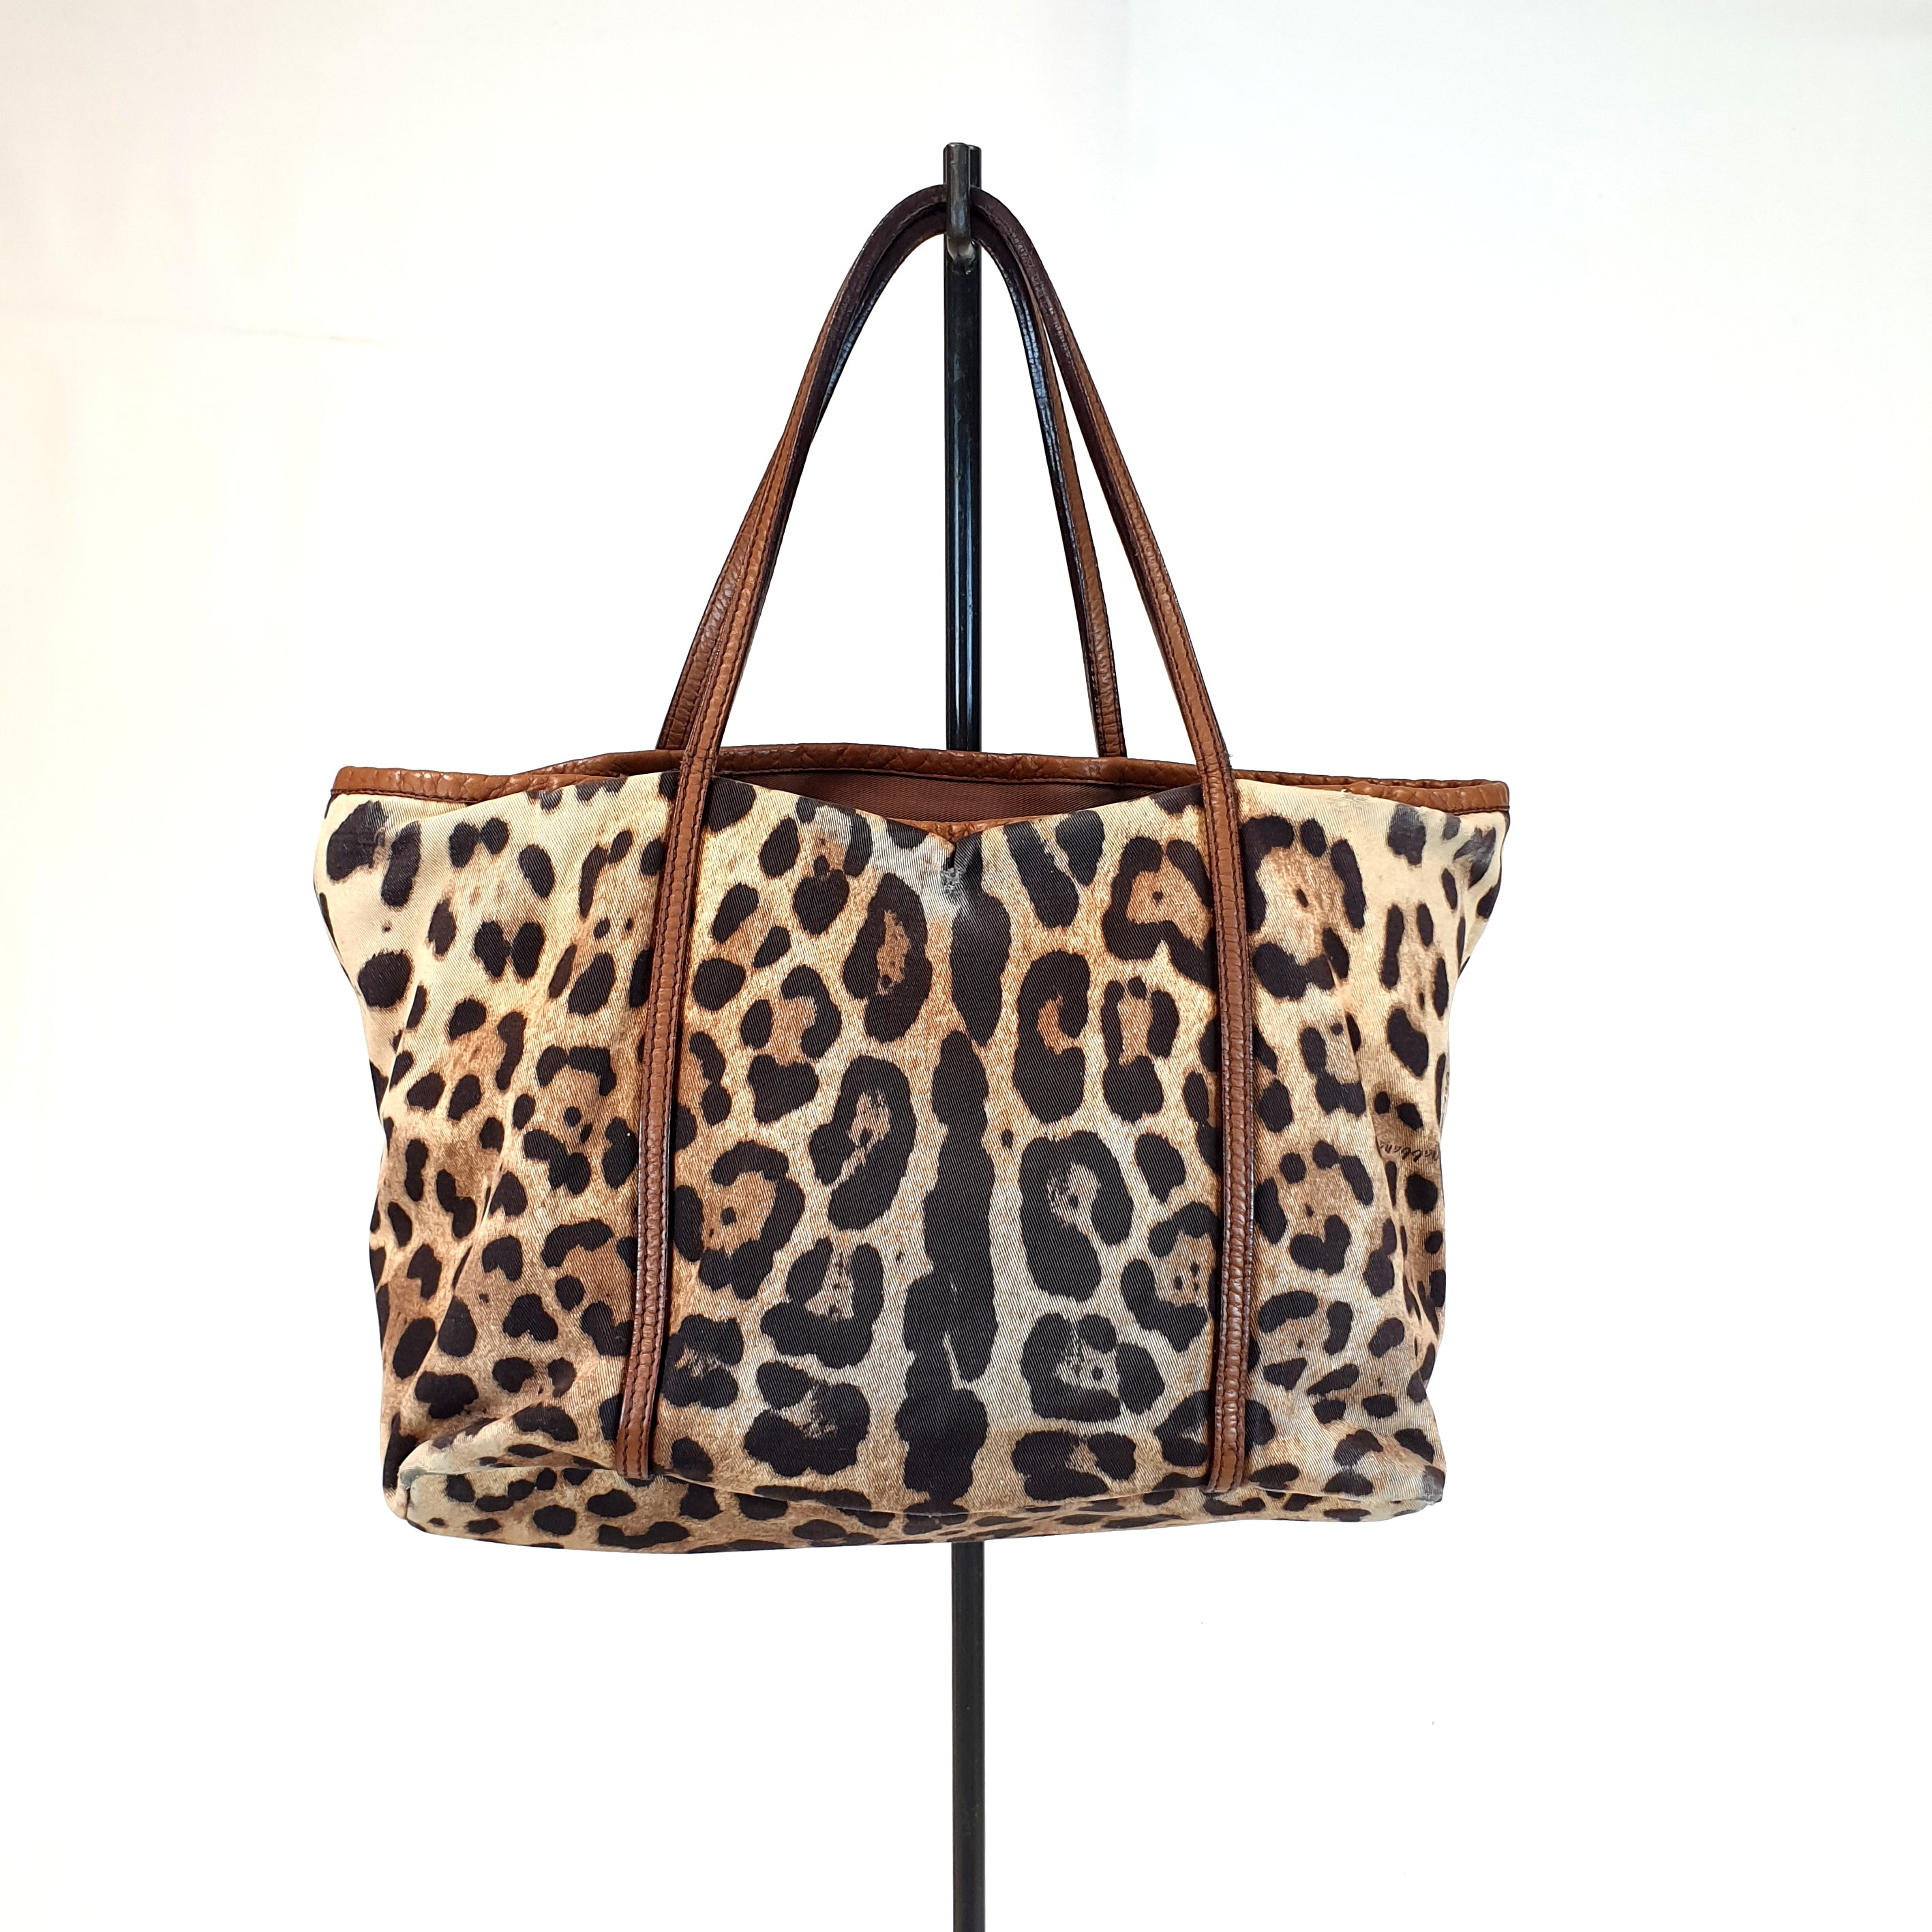 Dolce & Gabbana Leopard Shopper Bag